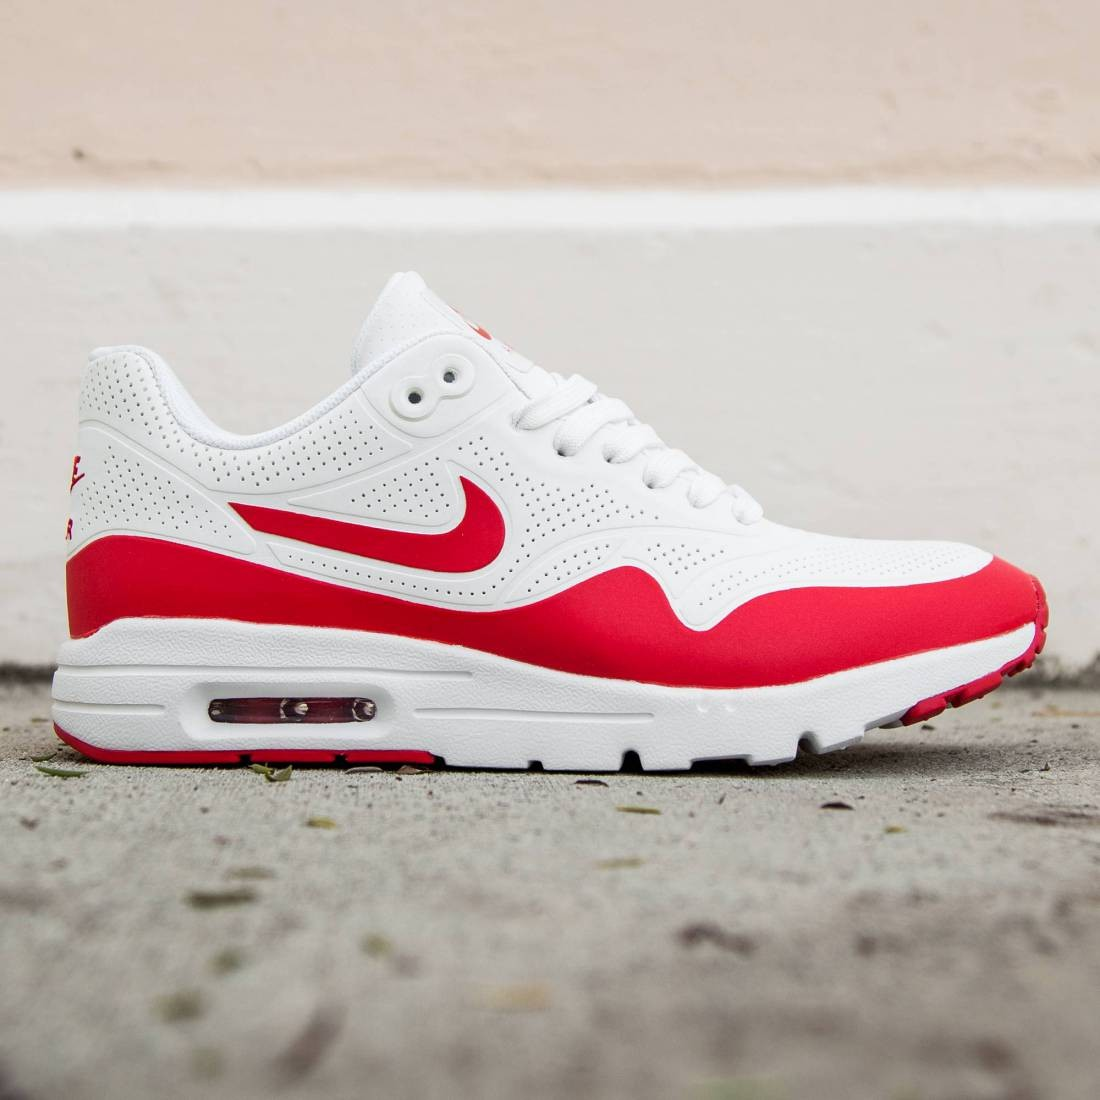 netherlands air max moire red 7778f 09acf